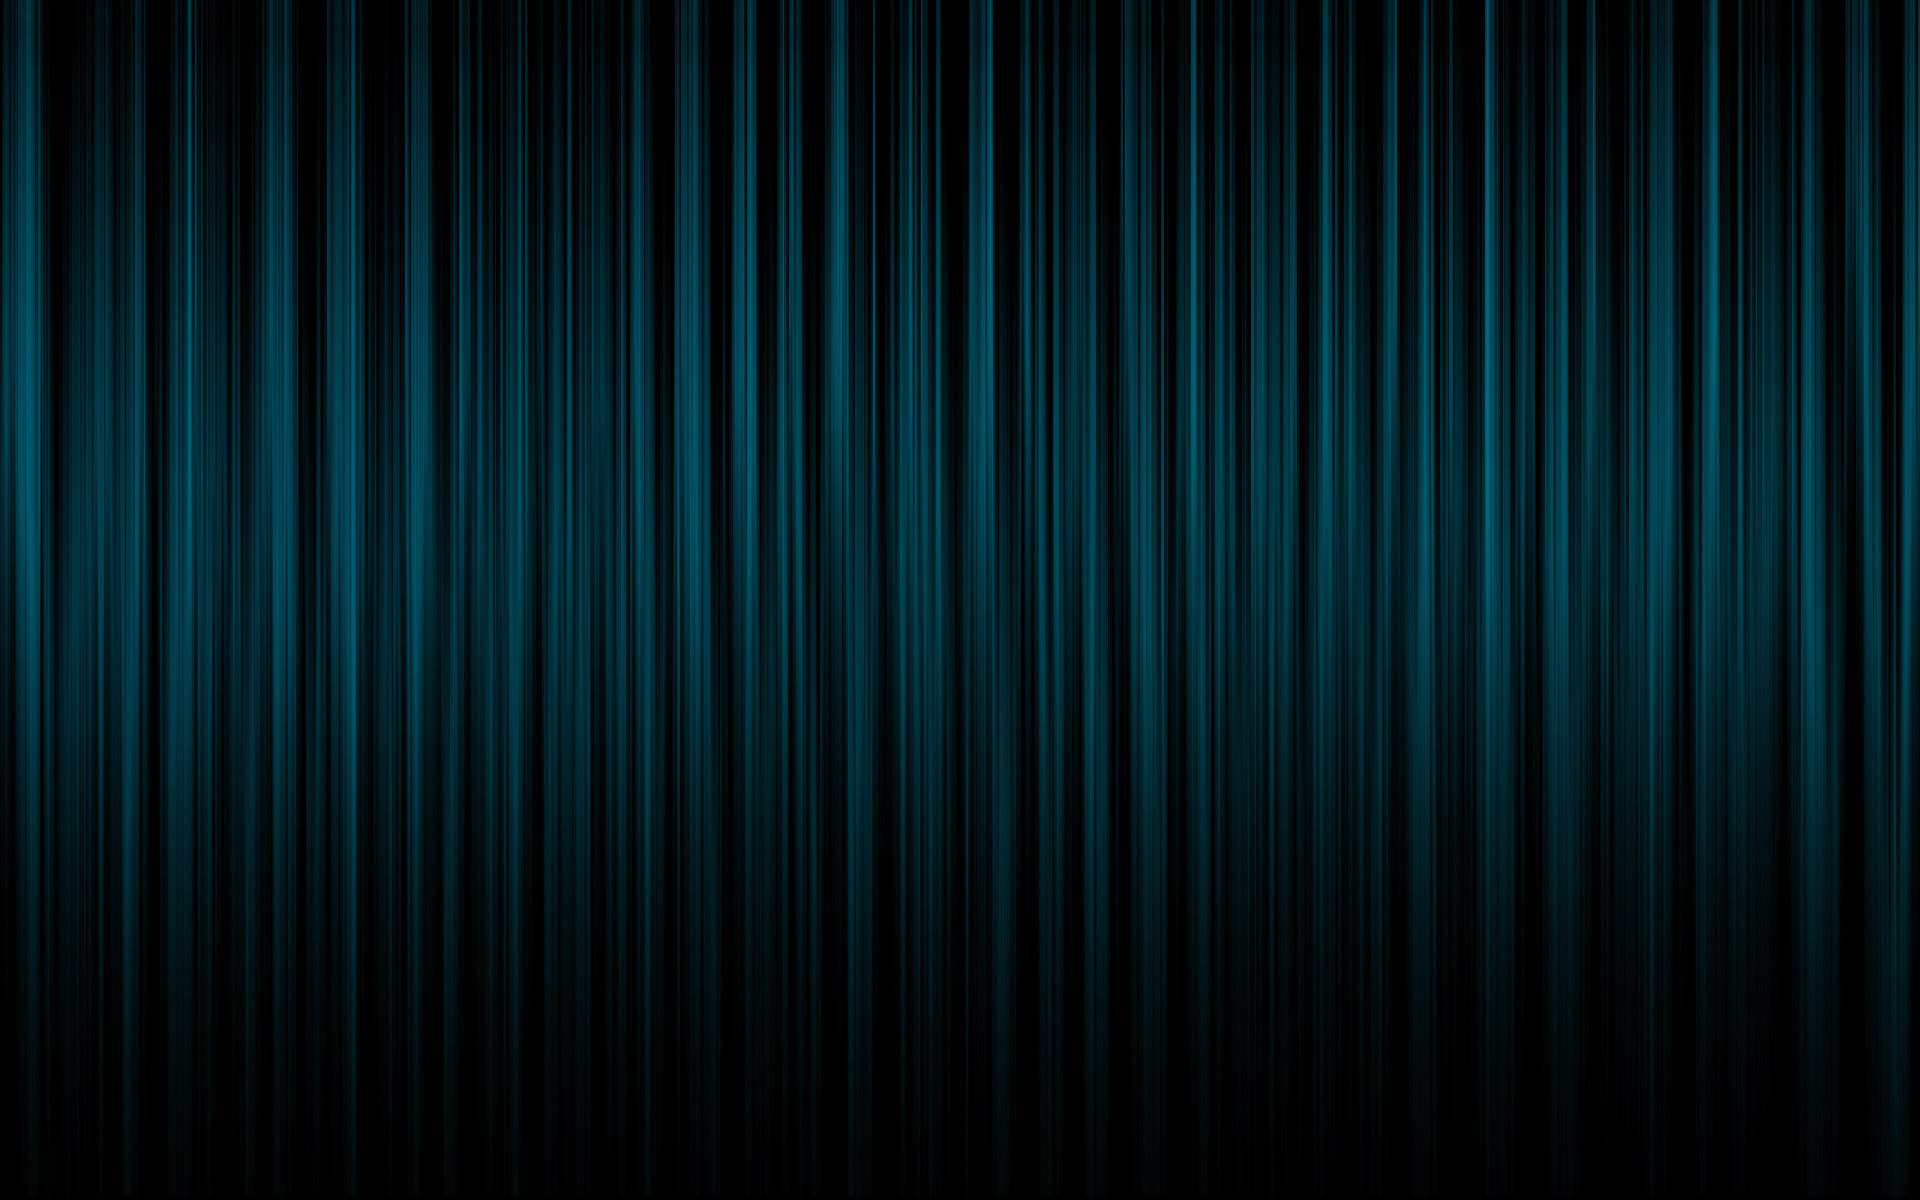 Best Drapes Black Curtain Wallpaper Wallpapersafari